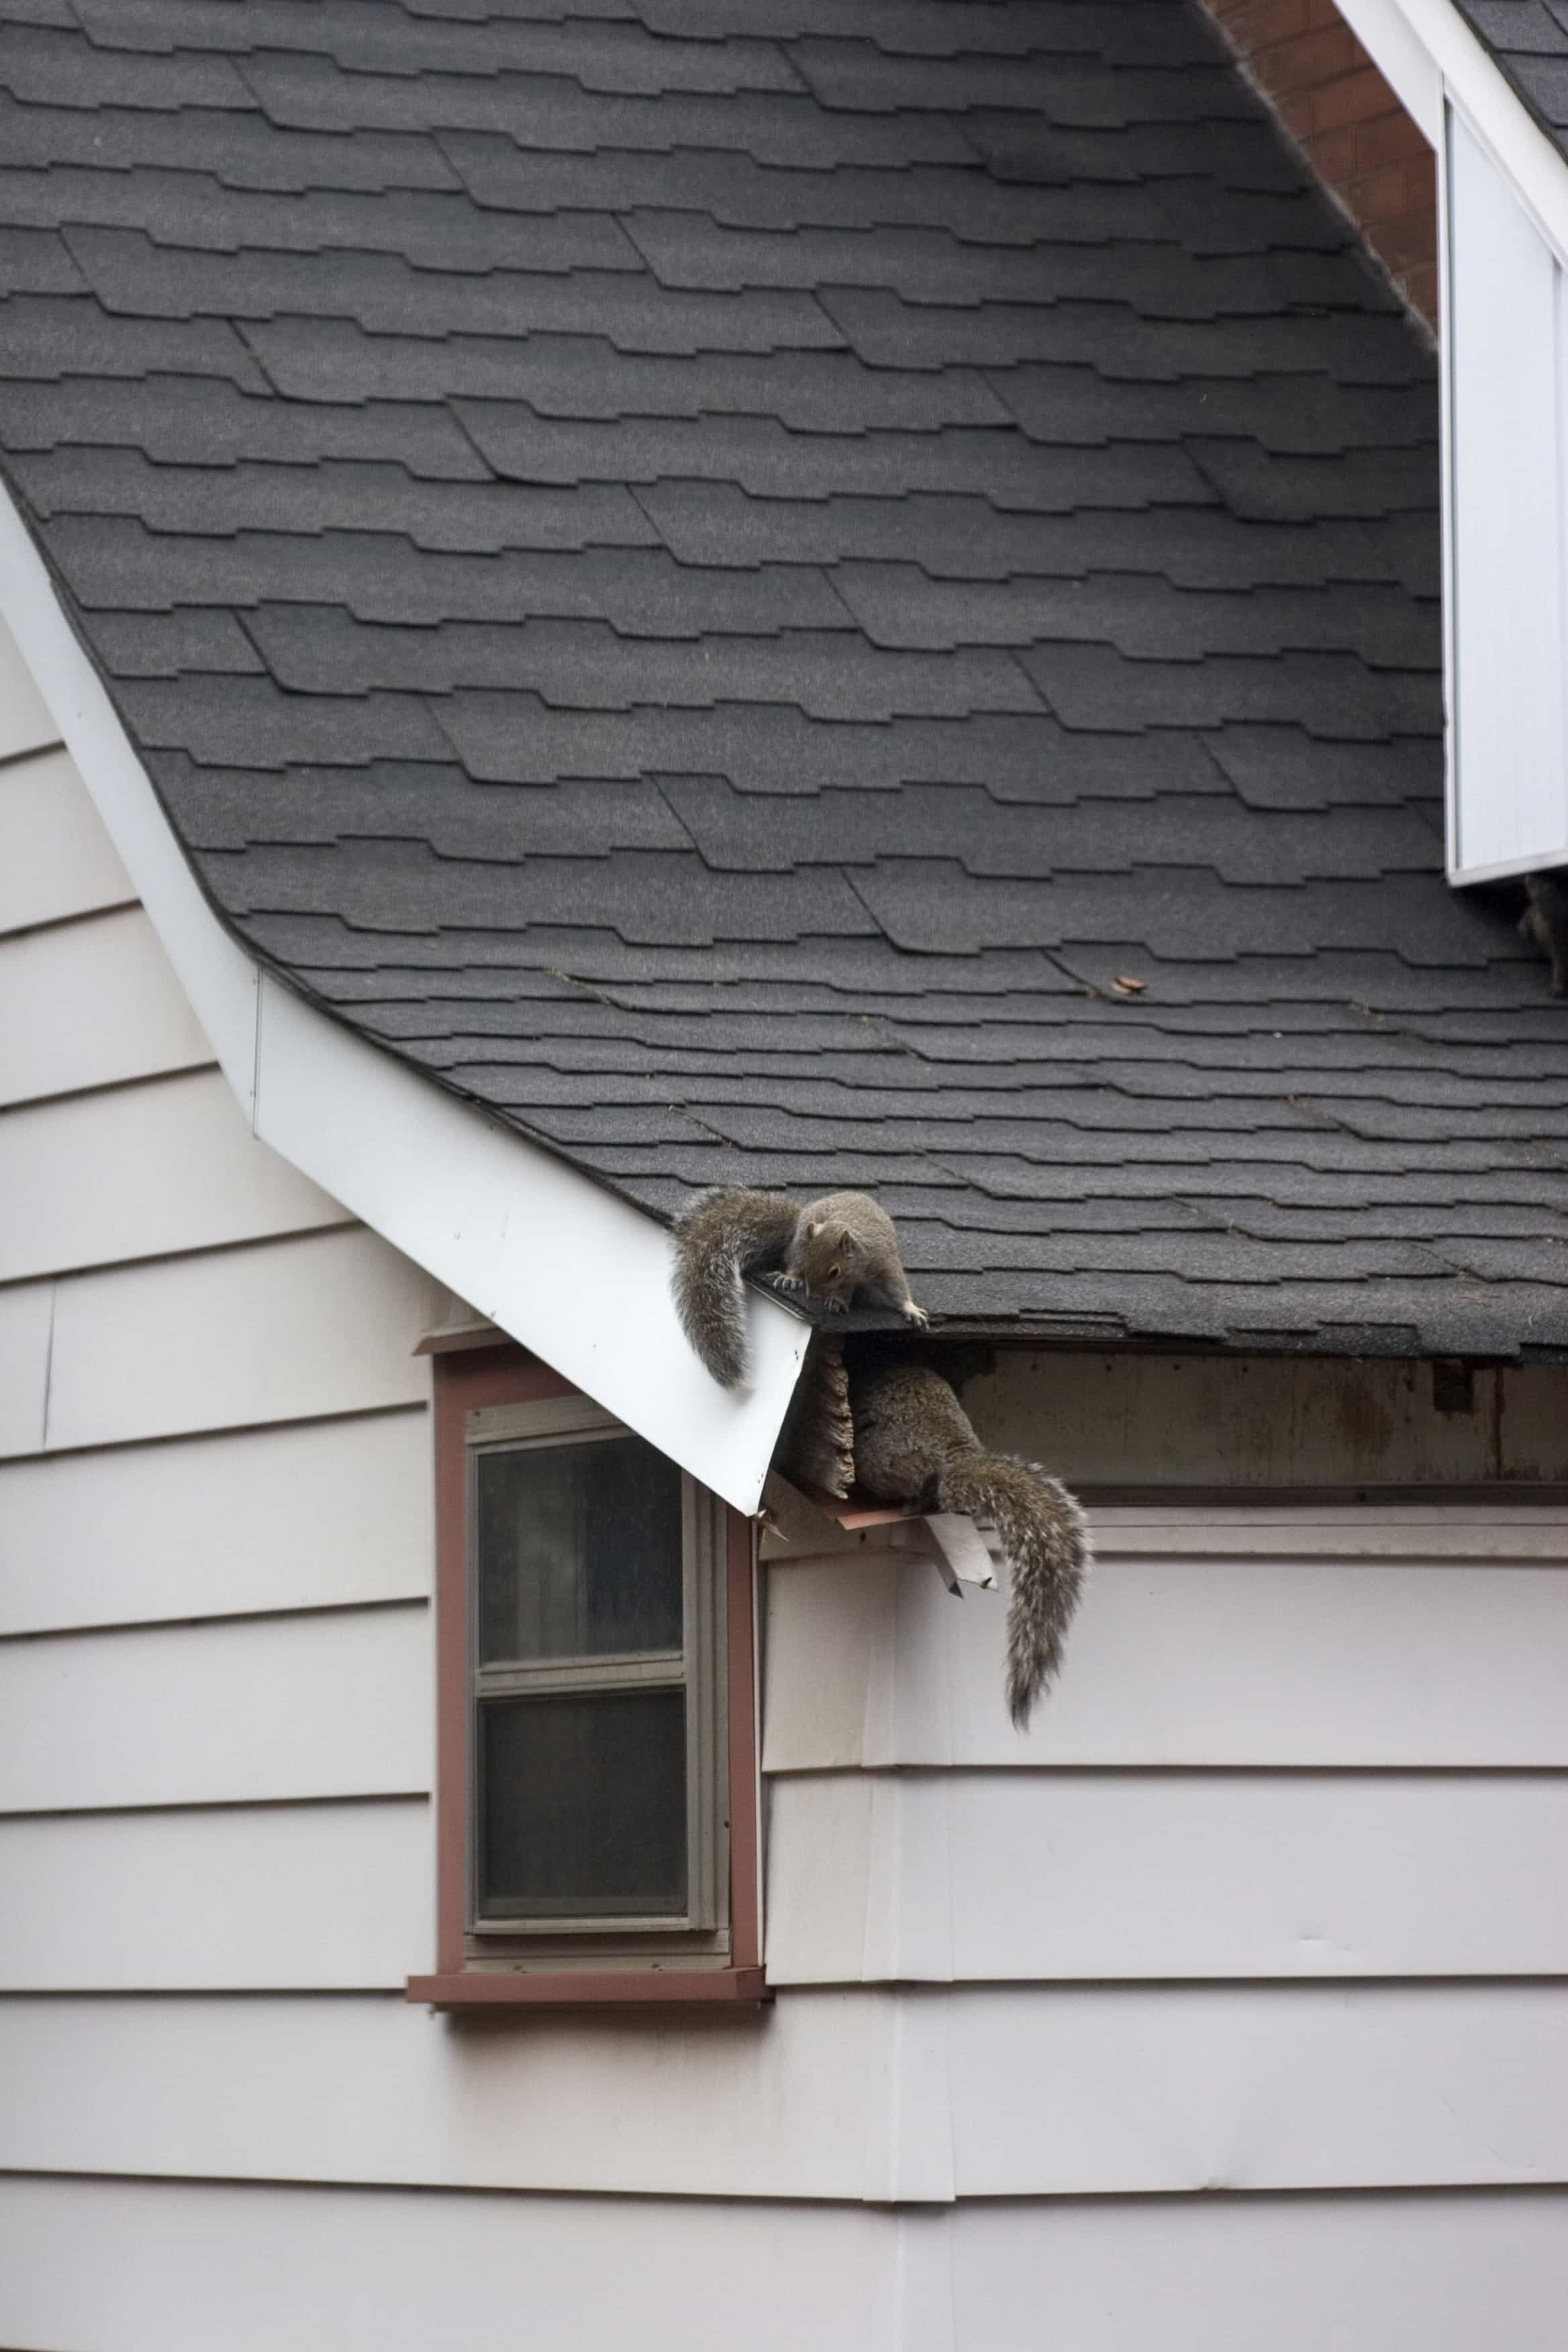 Get Rid of Squirrels in Attic